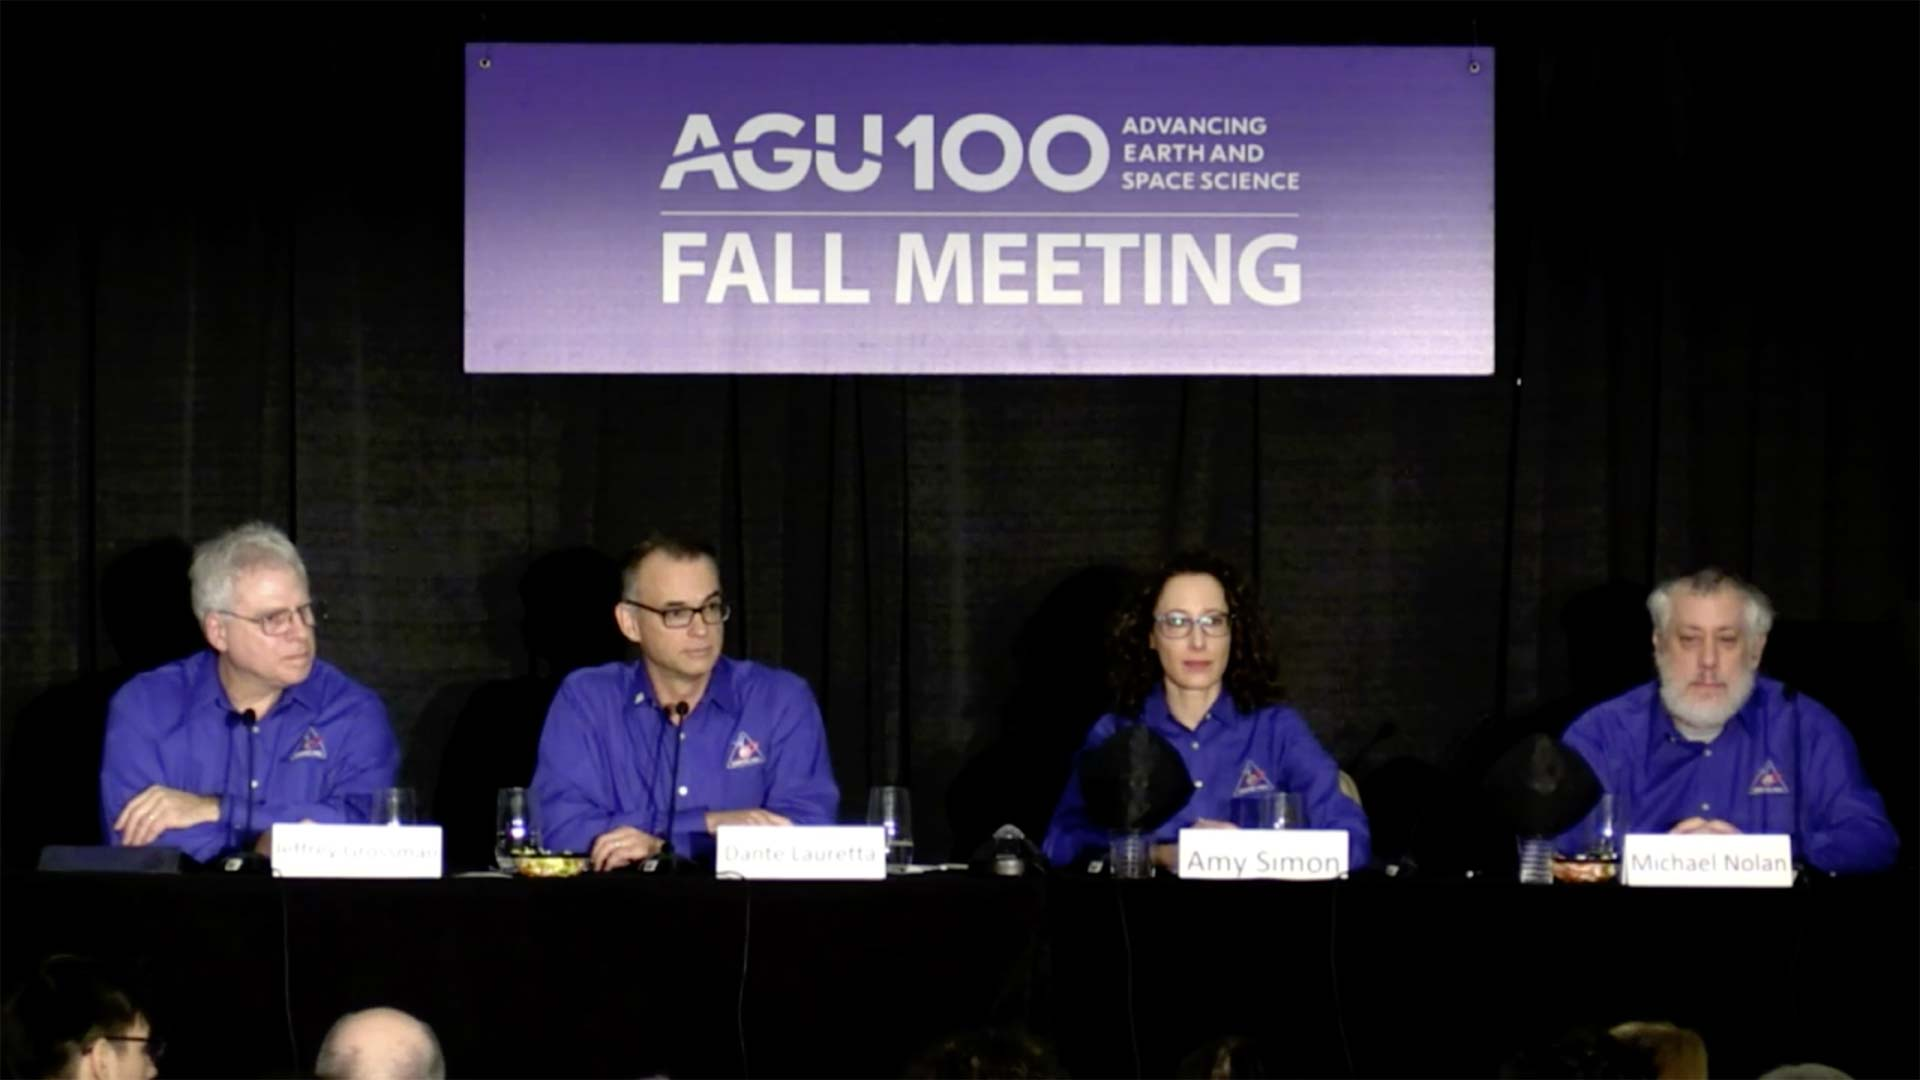 Scientists announce water findings in the clay of the asteroid Bennu in this still image from a livestream of the American Geophysical Union's 2018 Fall meeting.